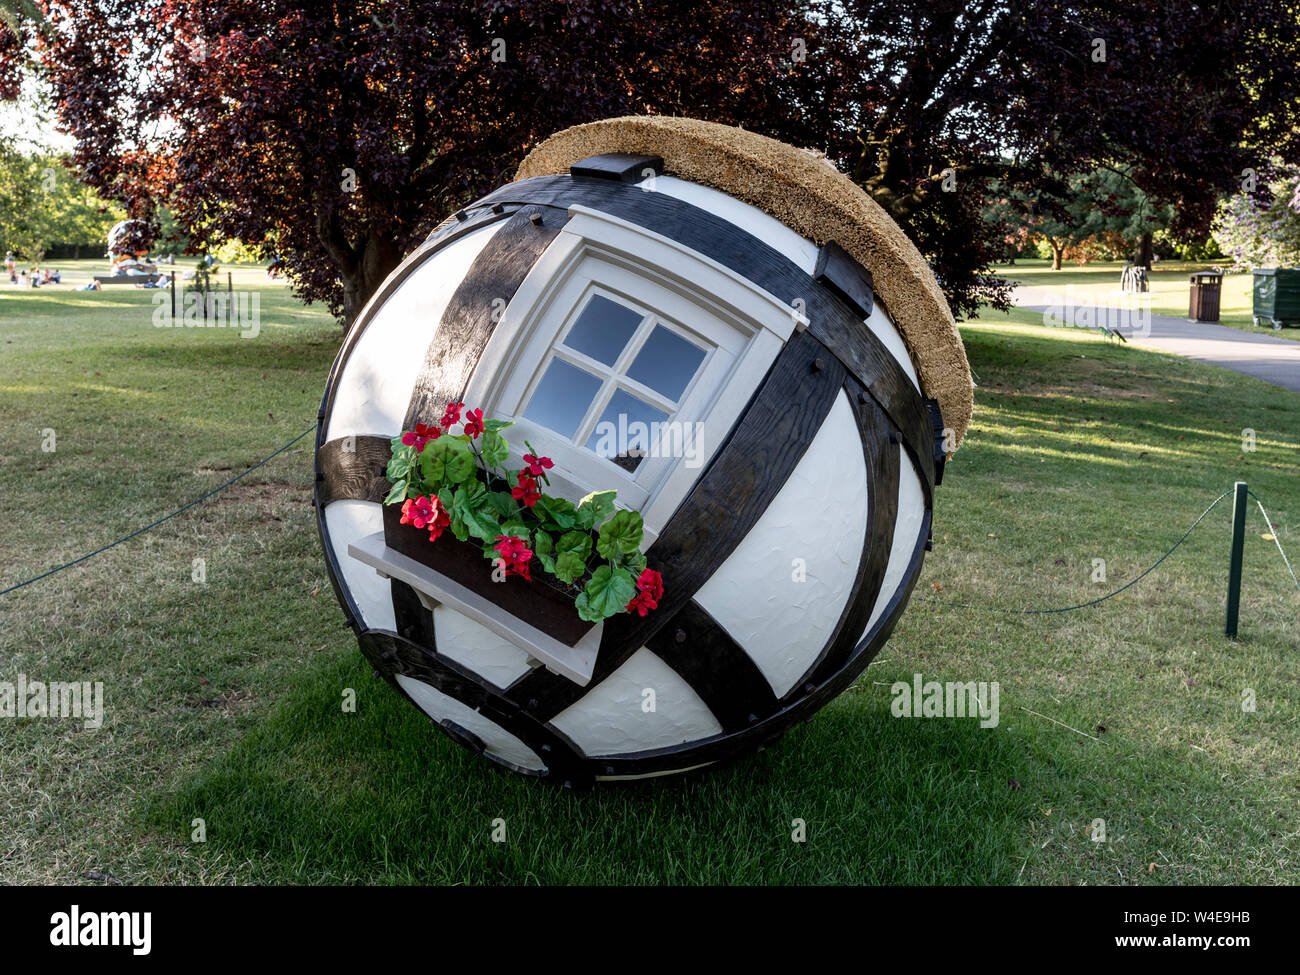 Small House Frieze Art Regents Park London Uk Stock Photo Alamy